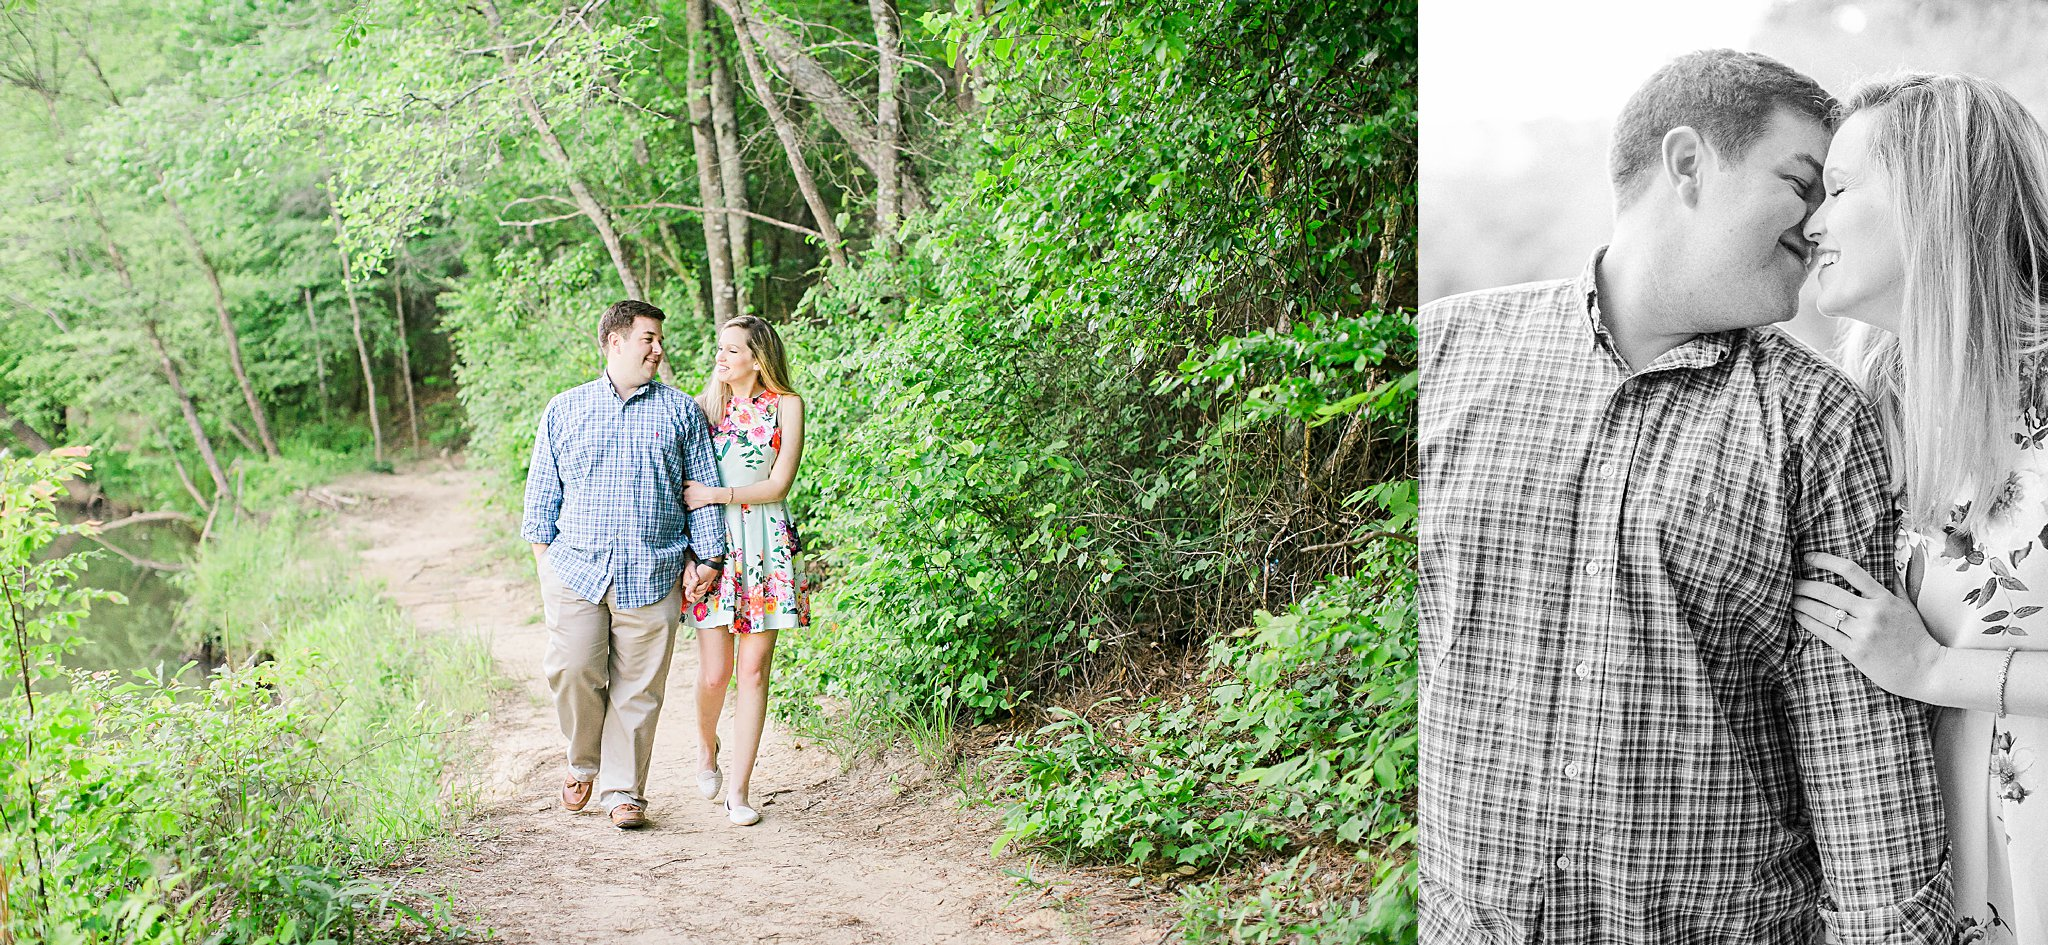 Atlanta-Wedding-Photographer-Sweetwater-Creek-State-Park-Engagement-Session-JB-Marie-Photography